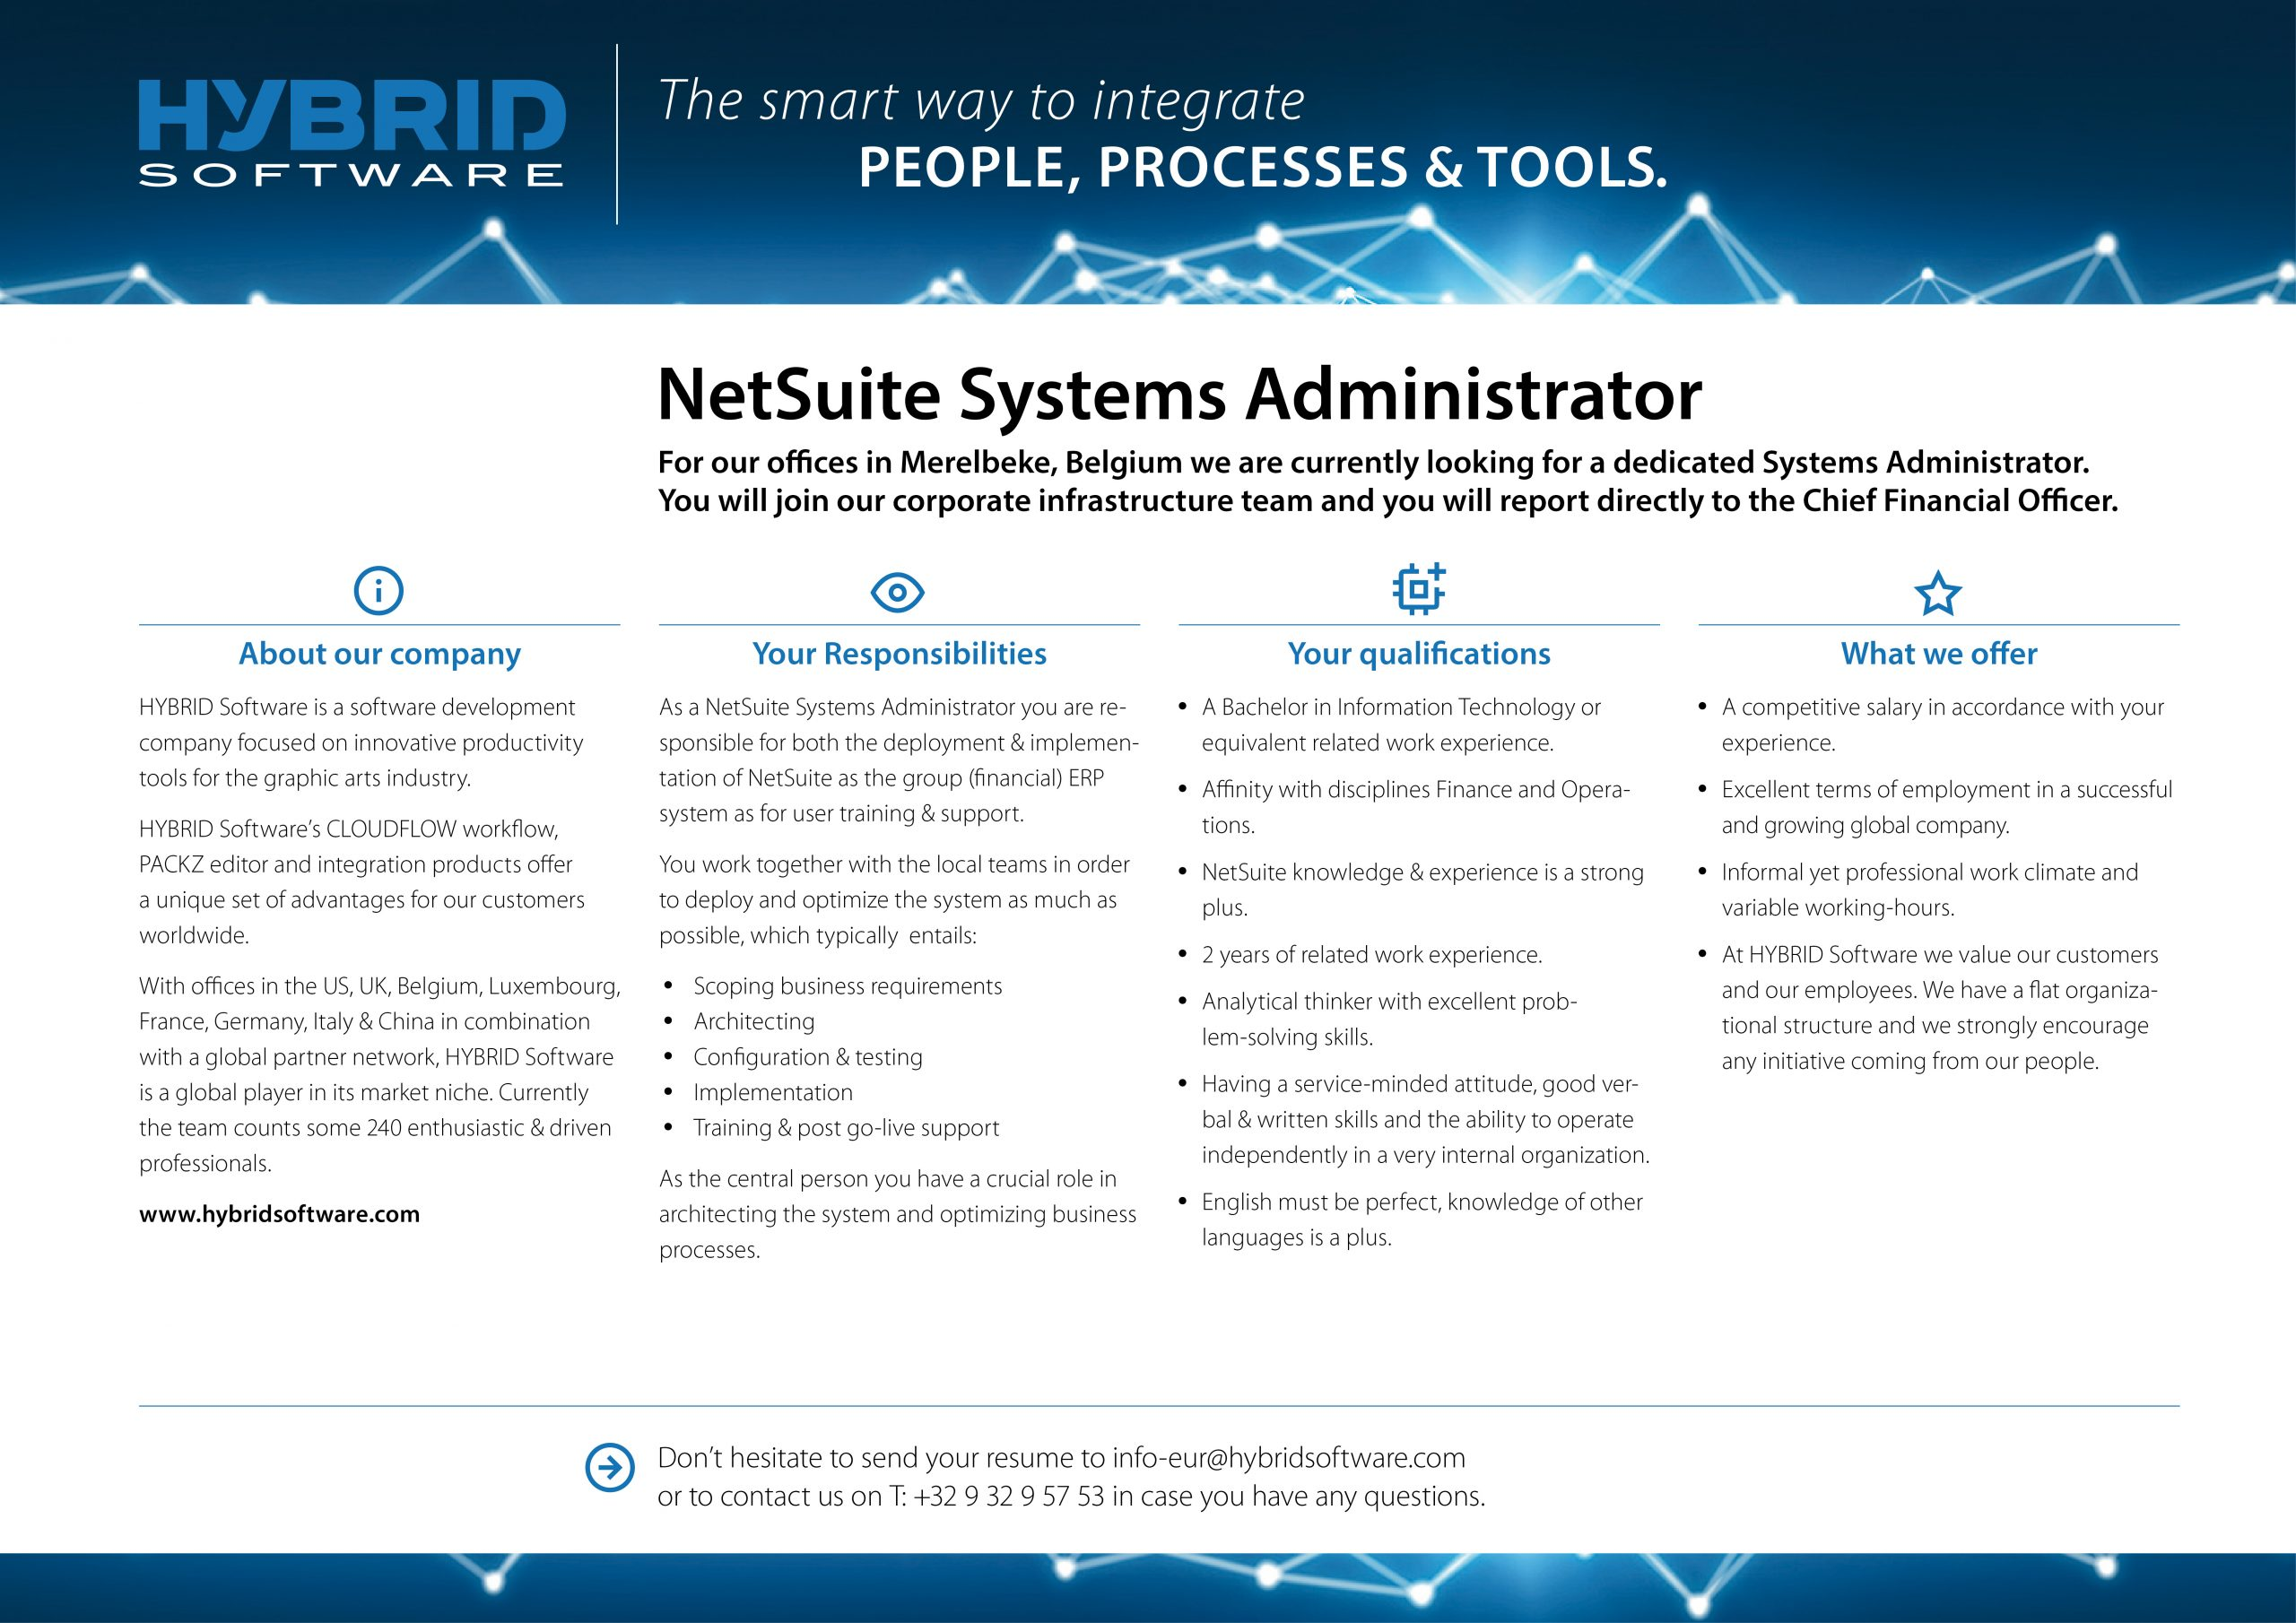 HYBRID Software Netsuite Systems Administrator Job Ad